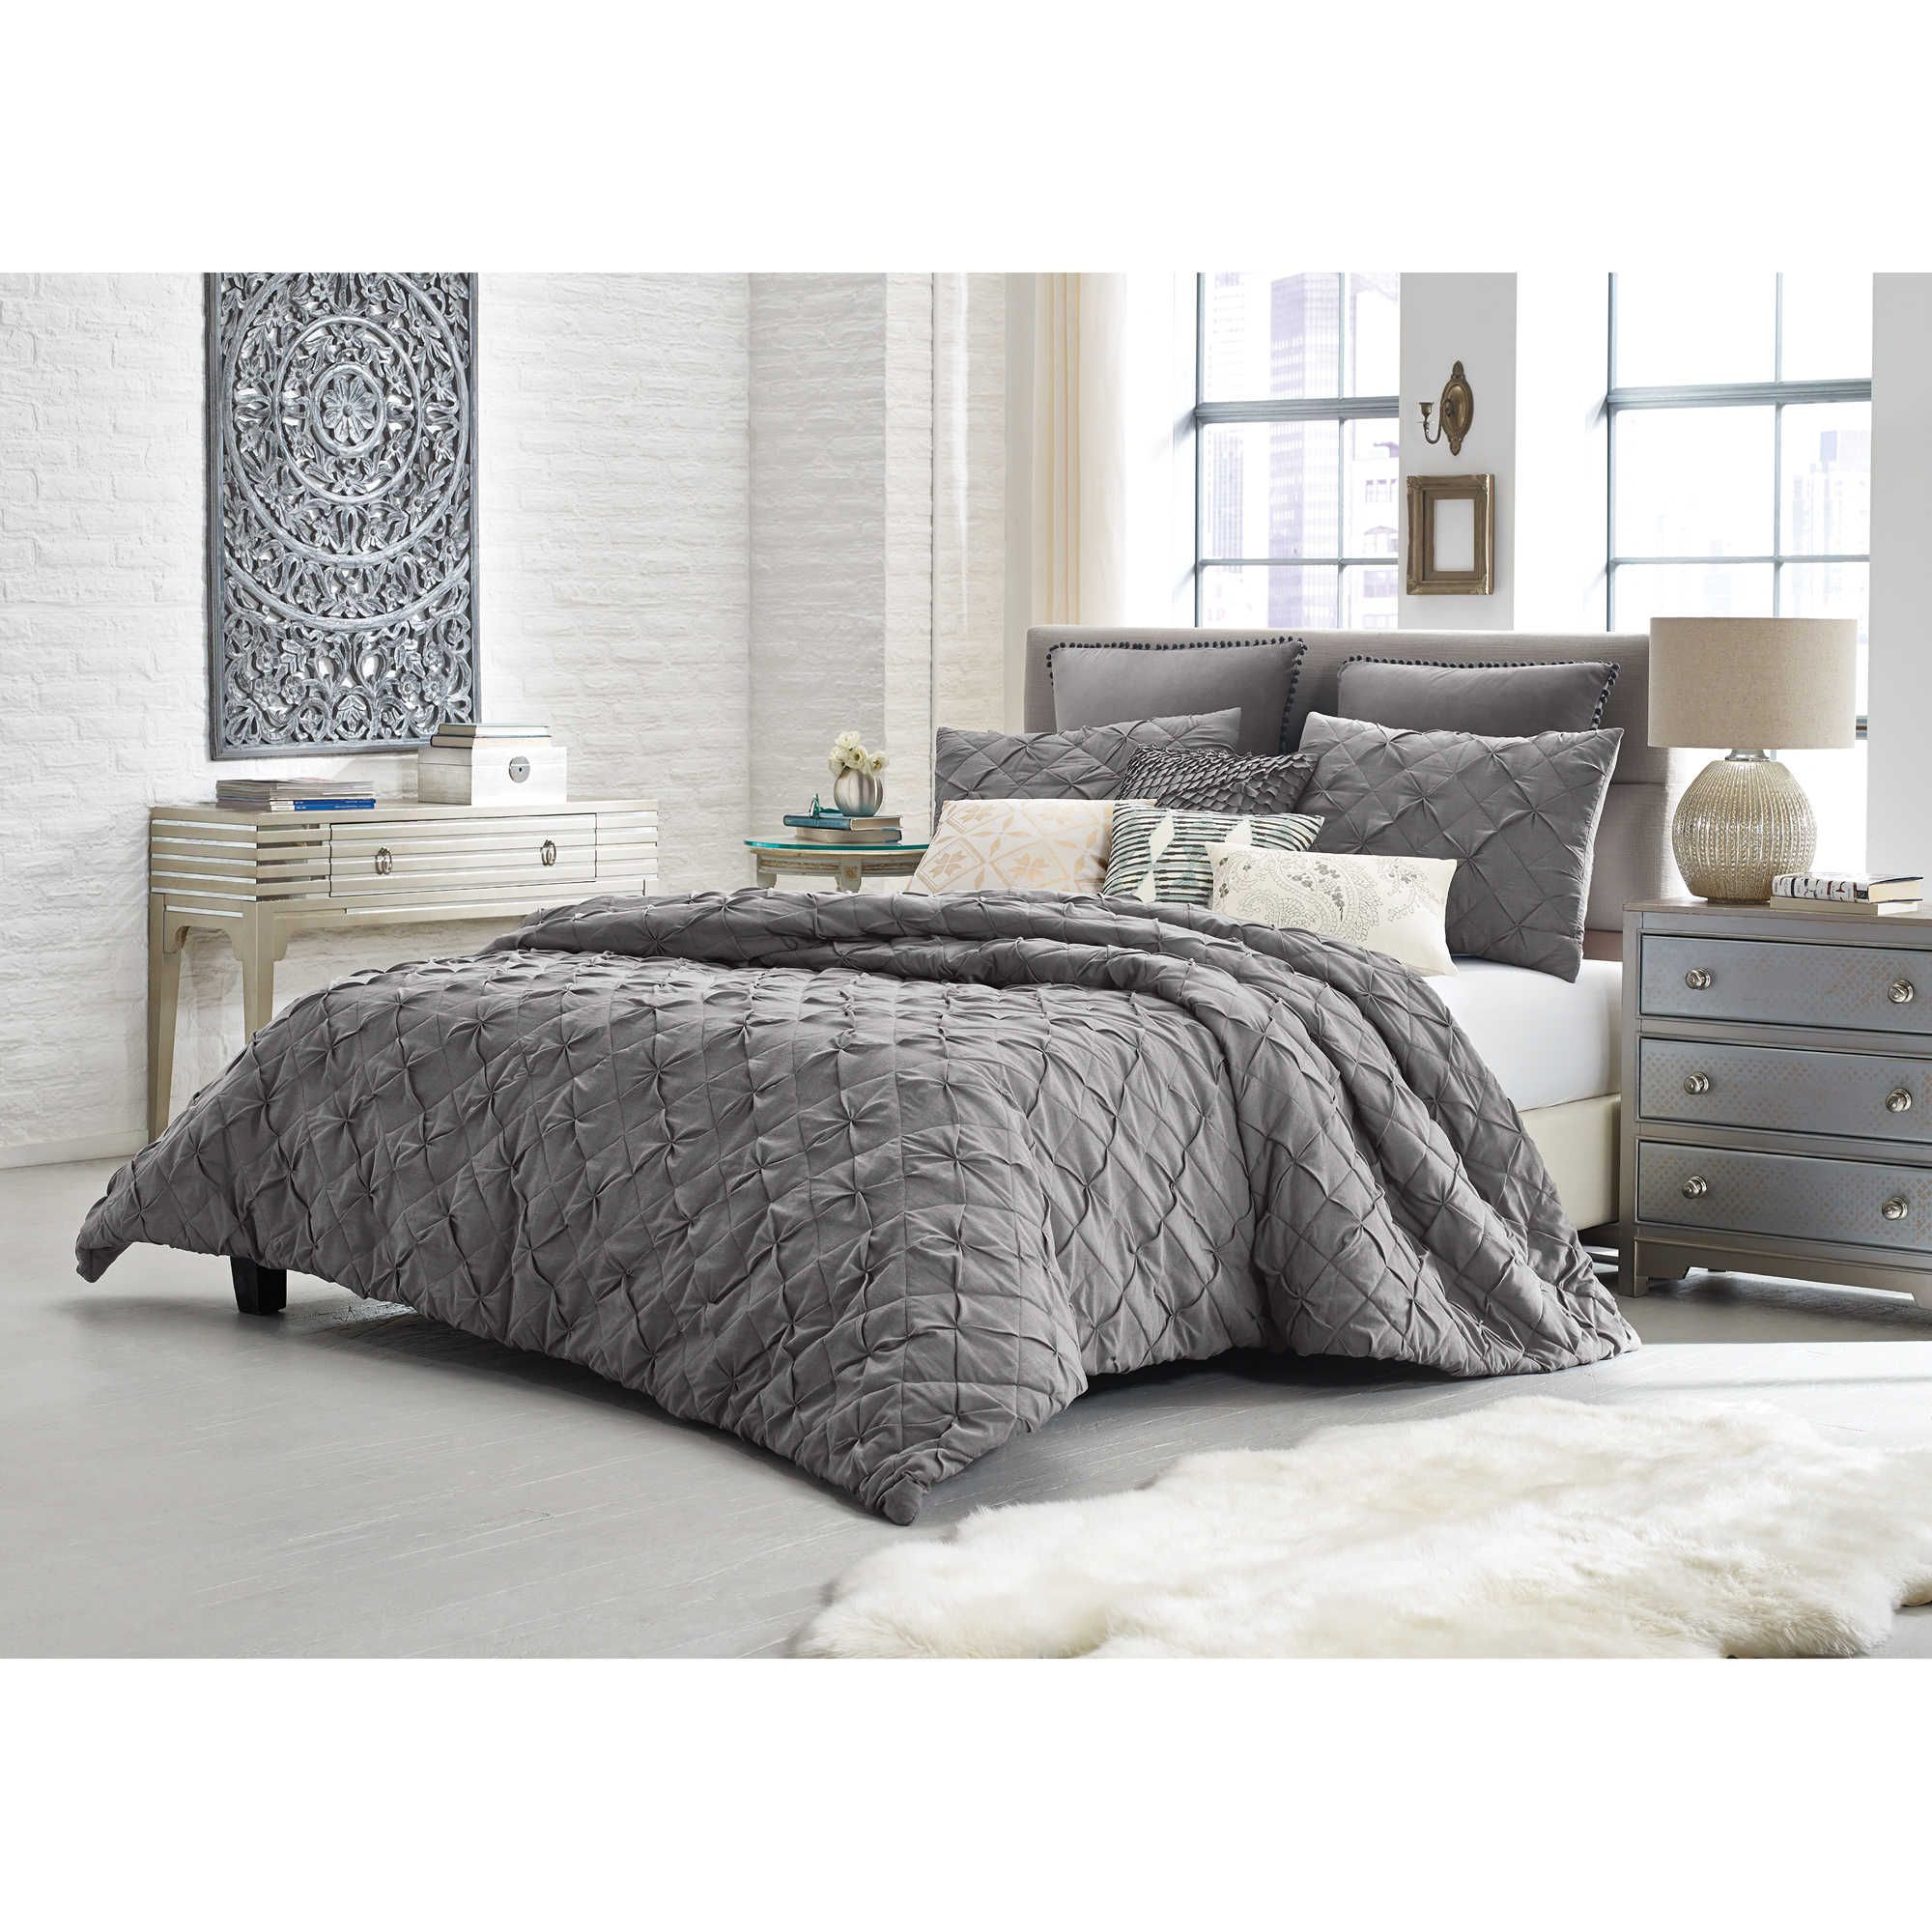 Charcoal Grey Bedding Picked This Up Today Love It With The Gray And Yellow